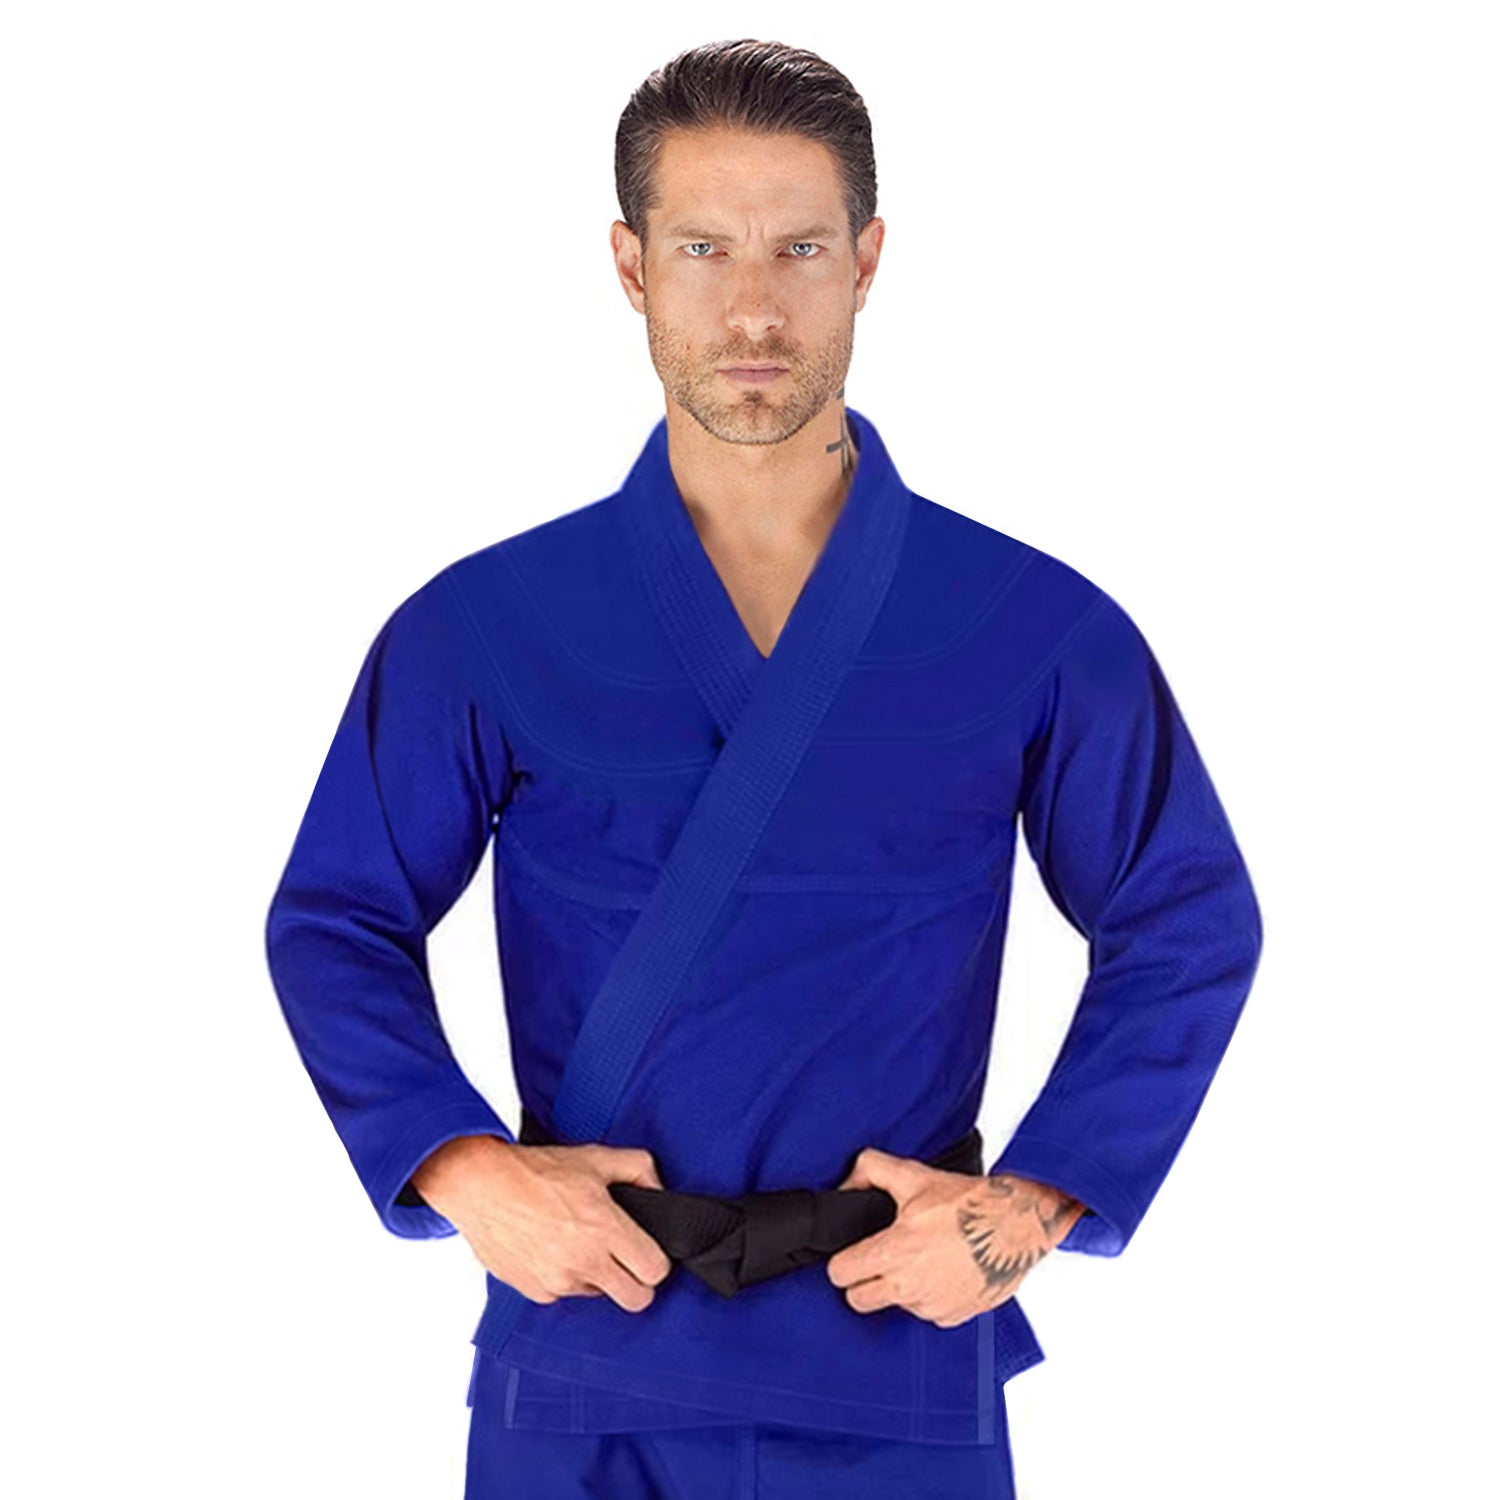 Elite Sports Essential Lightweight Preshrunk Blue Adult Brazilian Jiu Jitsu BJJ Gi With Free White Belt